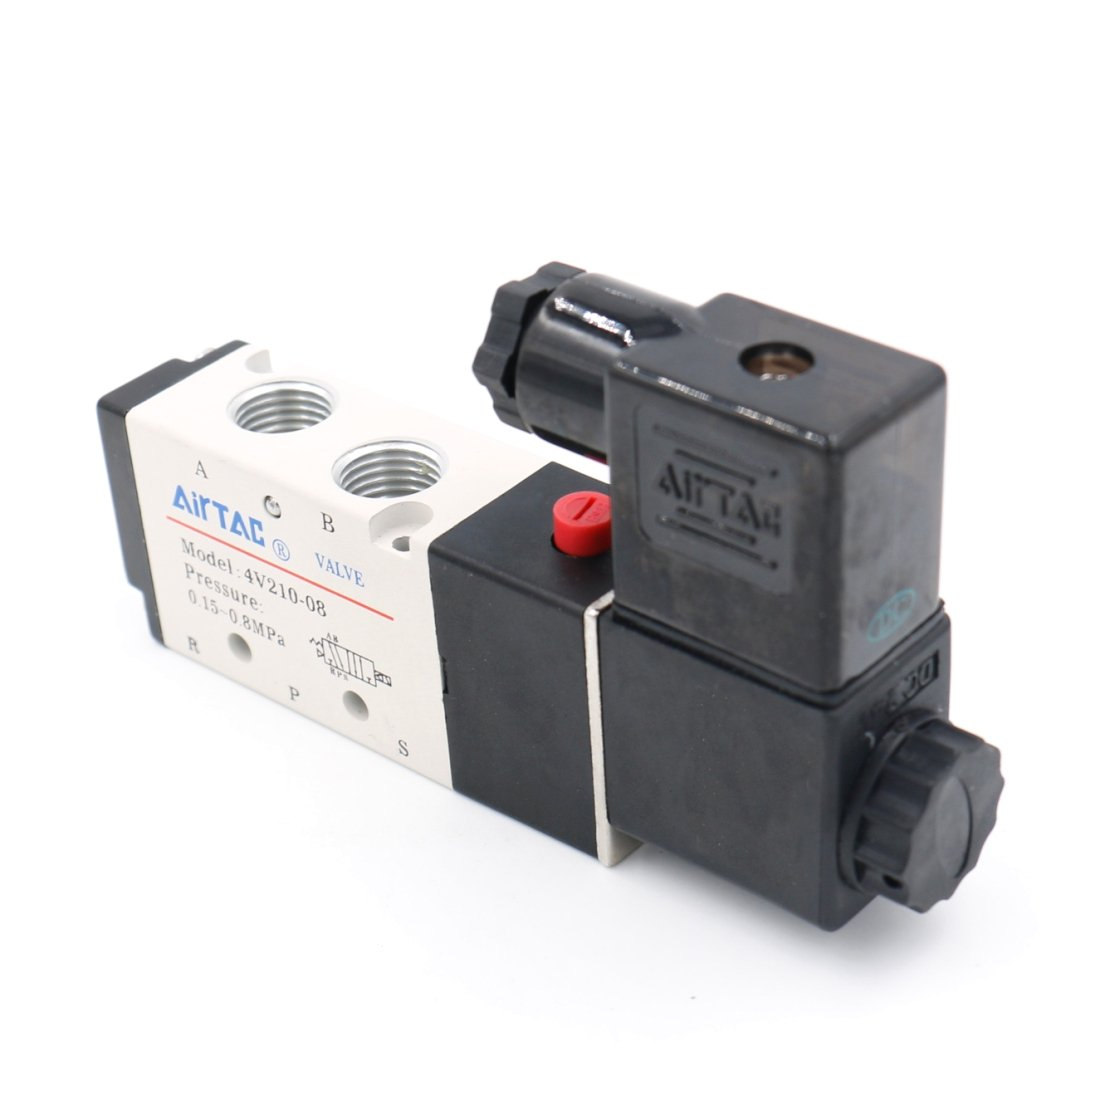 Baomain Pneumatic Air Control Solenoid Valve 4V210-08 DC24V 5 Way 2 Position PT1/4'' Internally Piloted Acting Type Single Electrical Control by Baomain (Image #1)